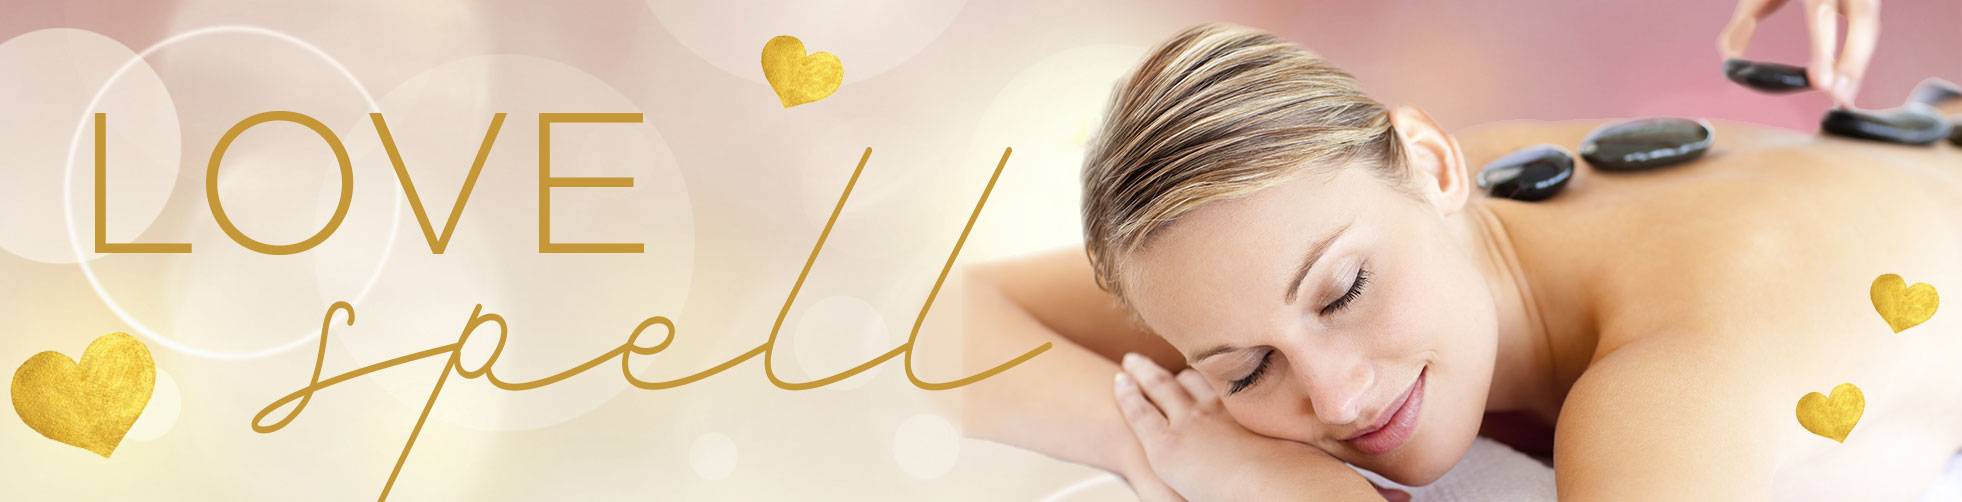 Valentine Spa Specials, Love Spell Massage and Body Treatment